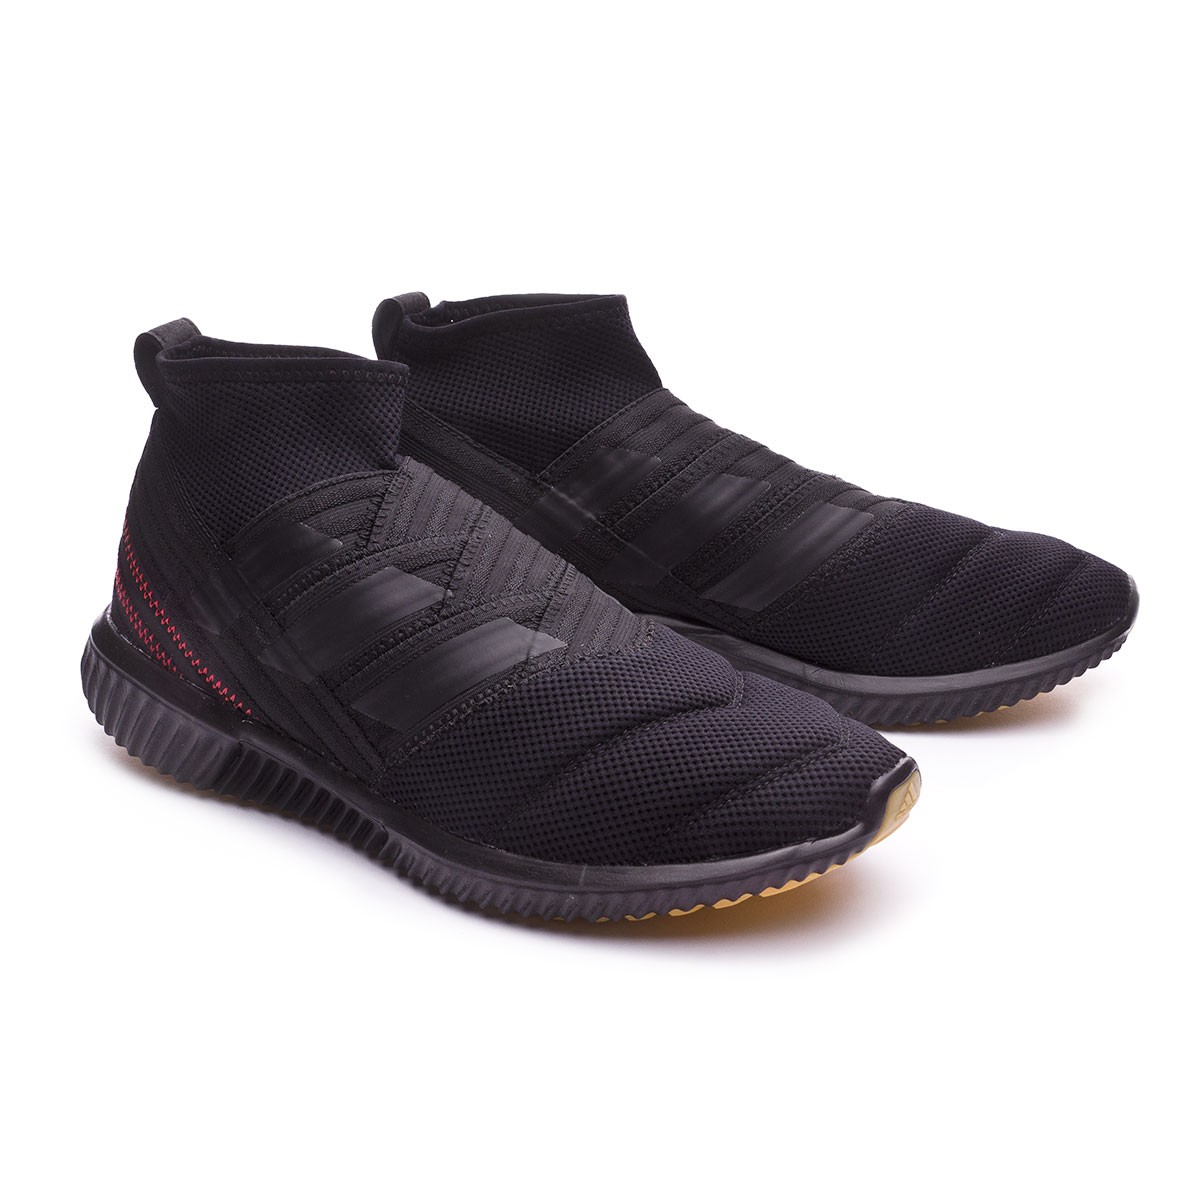 b0bb99e64 Trainers adidas Nemeziz Mid Cut TR Core black-Red - Football store ...